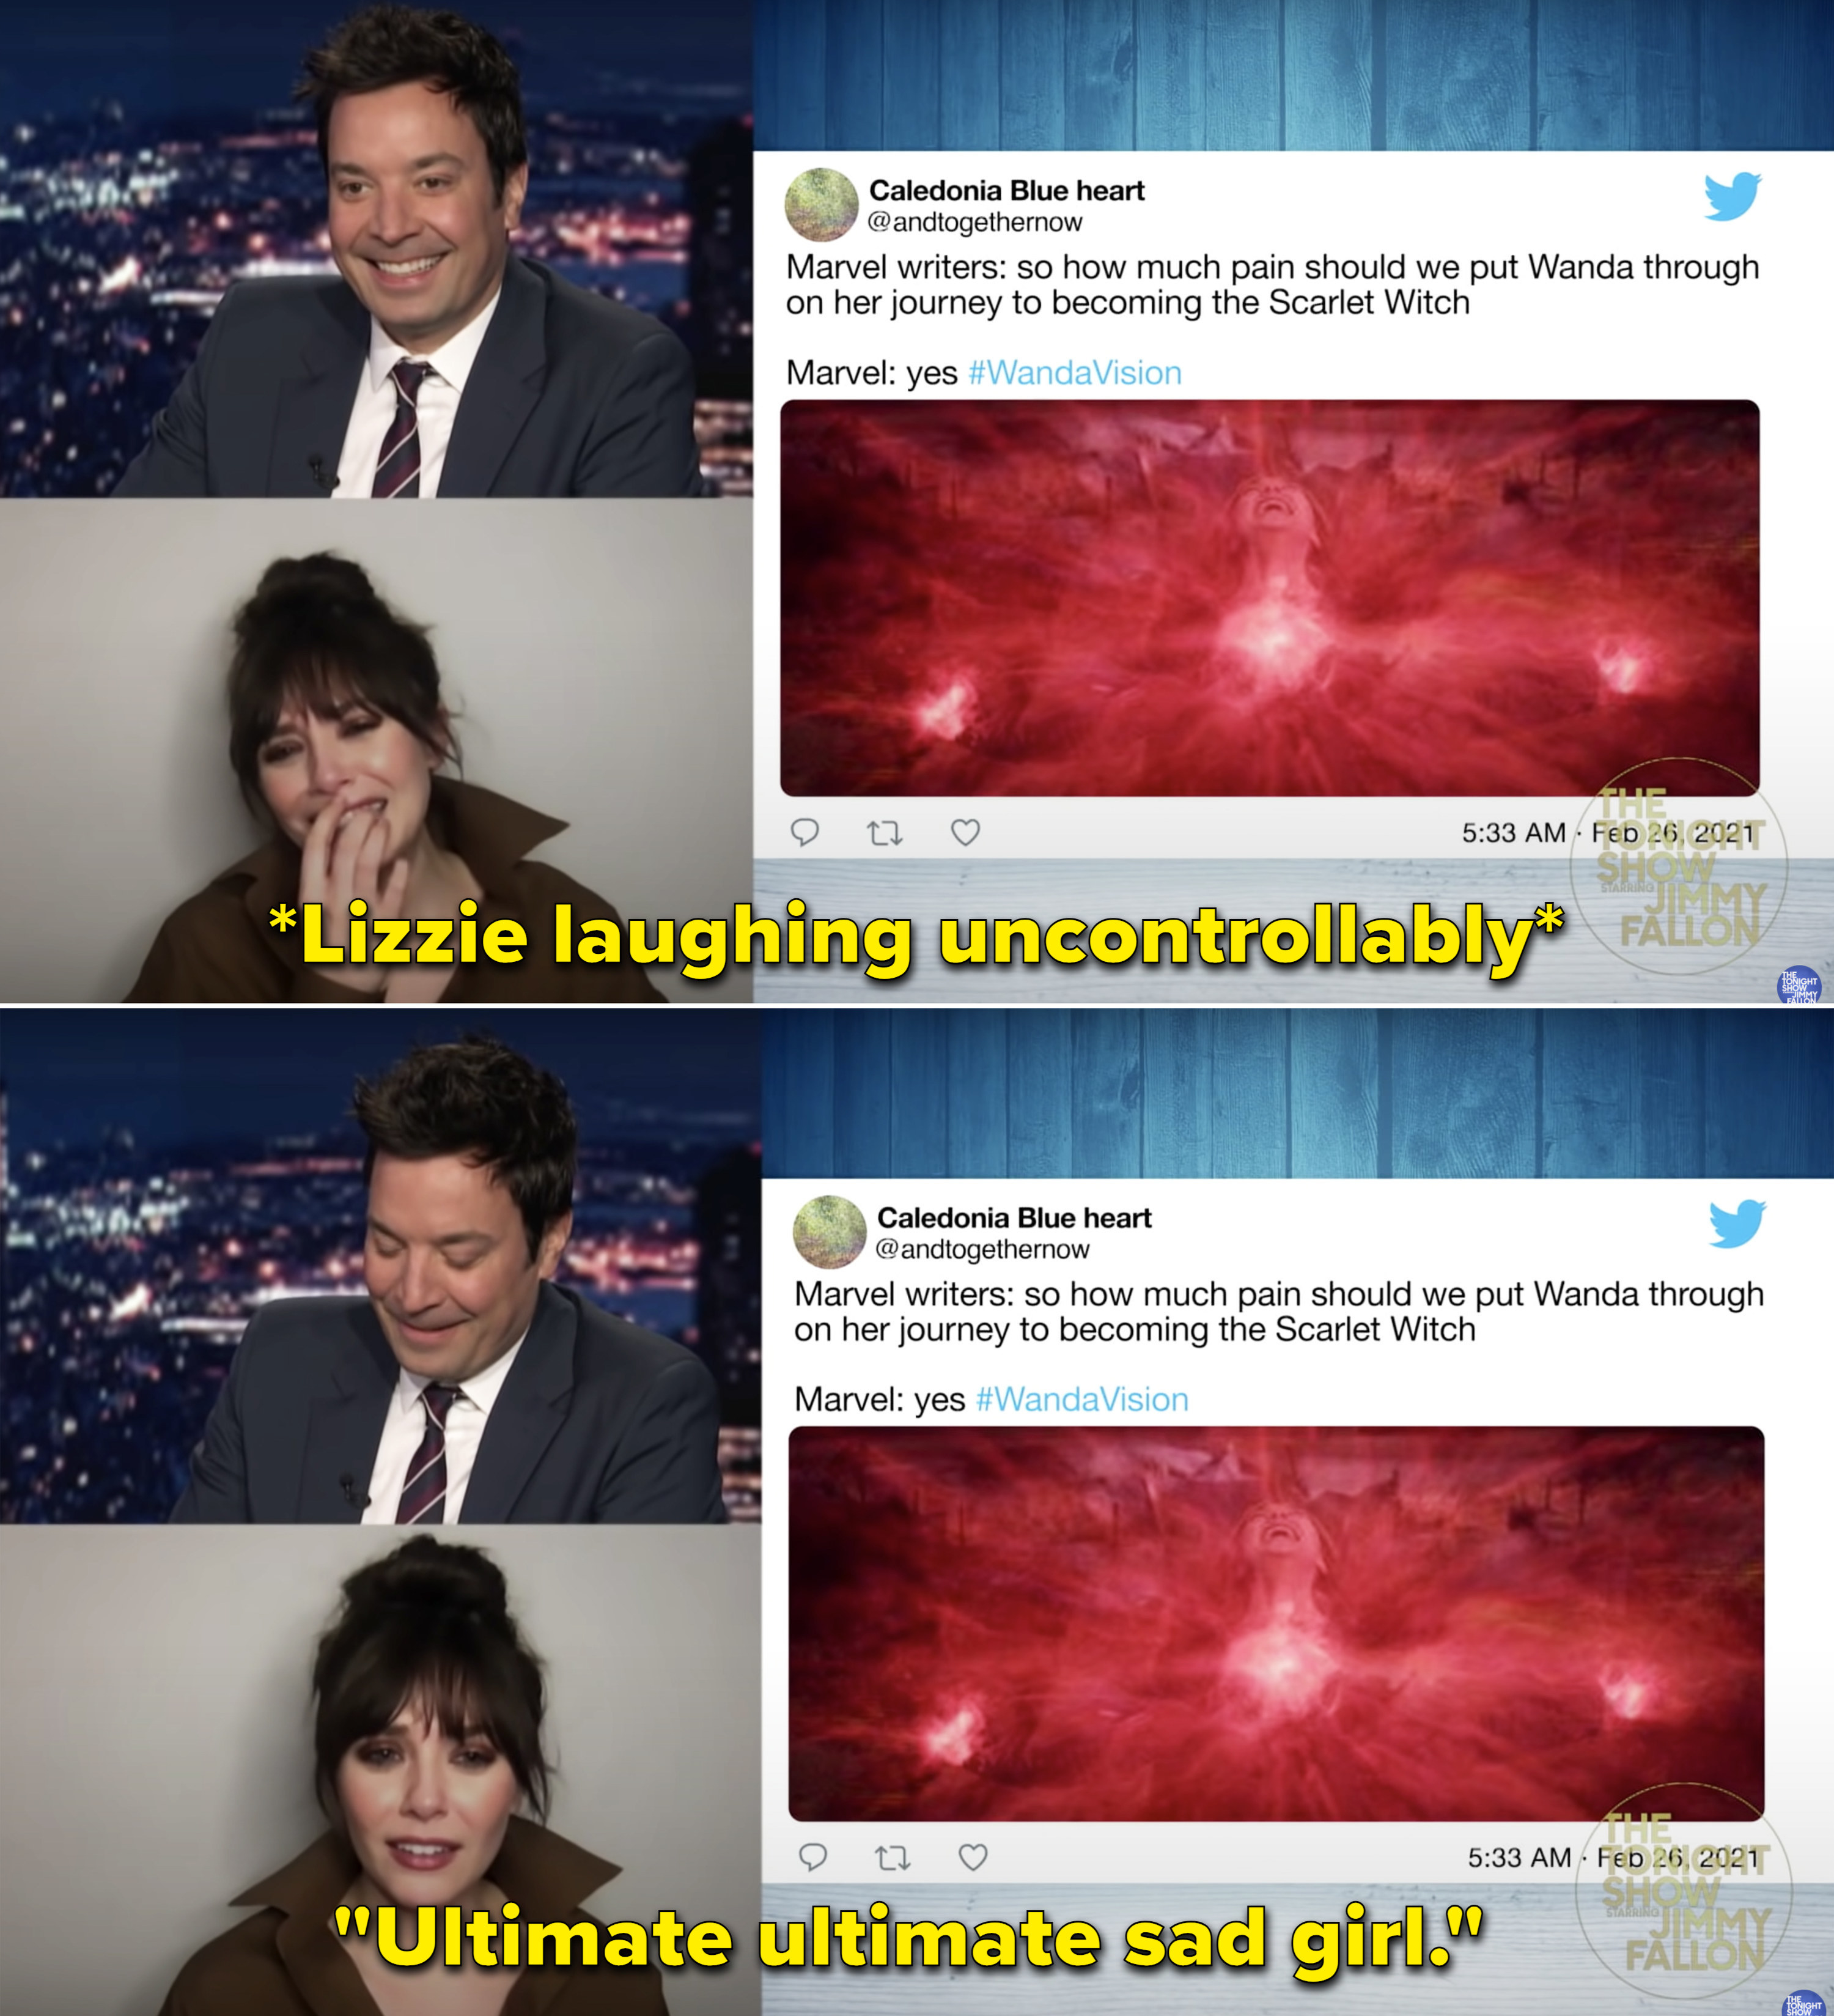 """Lizzie laughing uncontrollably over a meme about the Marvel writers cause Wanda pain. And Lizzie saying, """"Ultimate ultimate sad girl"""""""